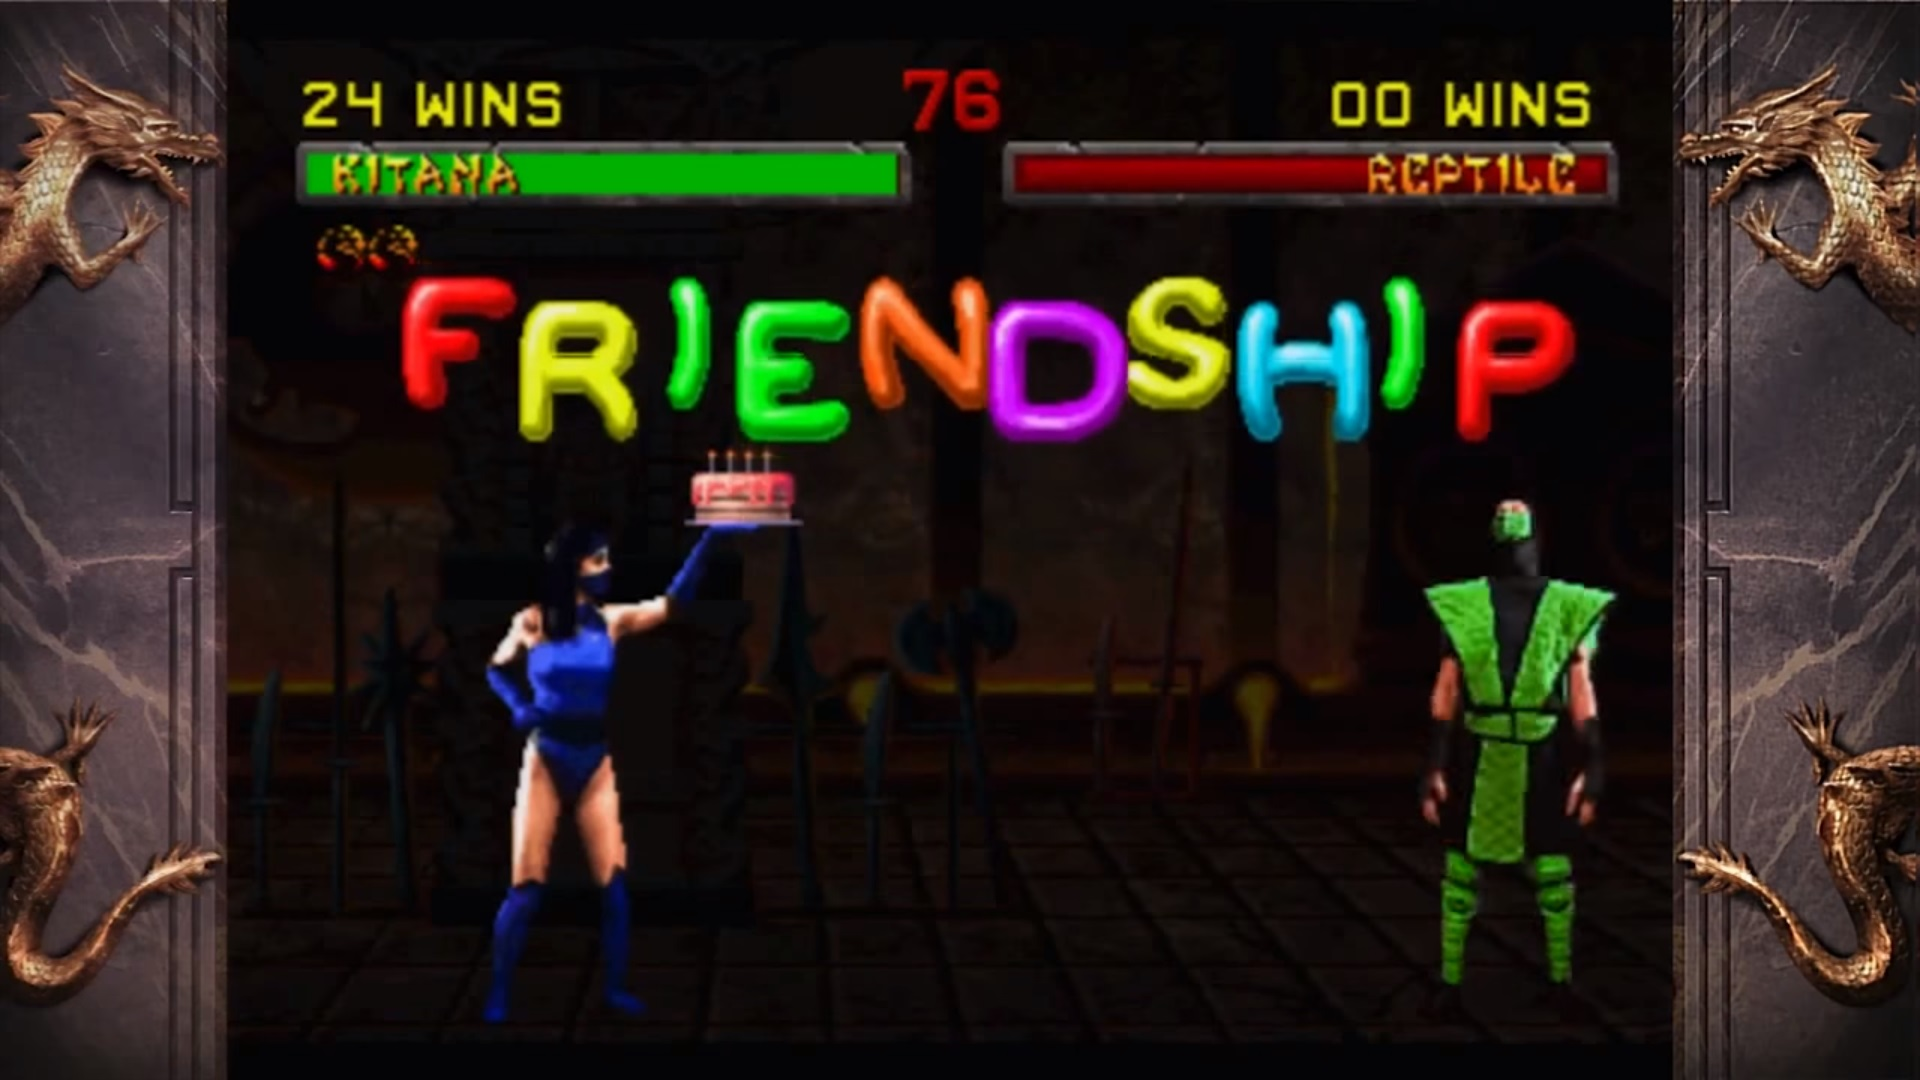 celebrate-25-years-of-mortal-kombat-with-these-fatality-comparisons-social.jpg